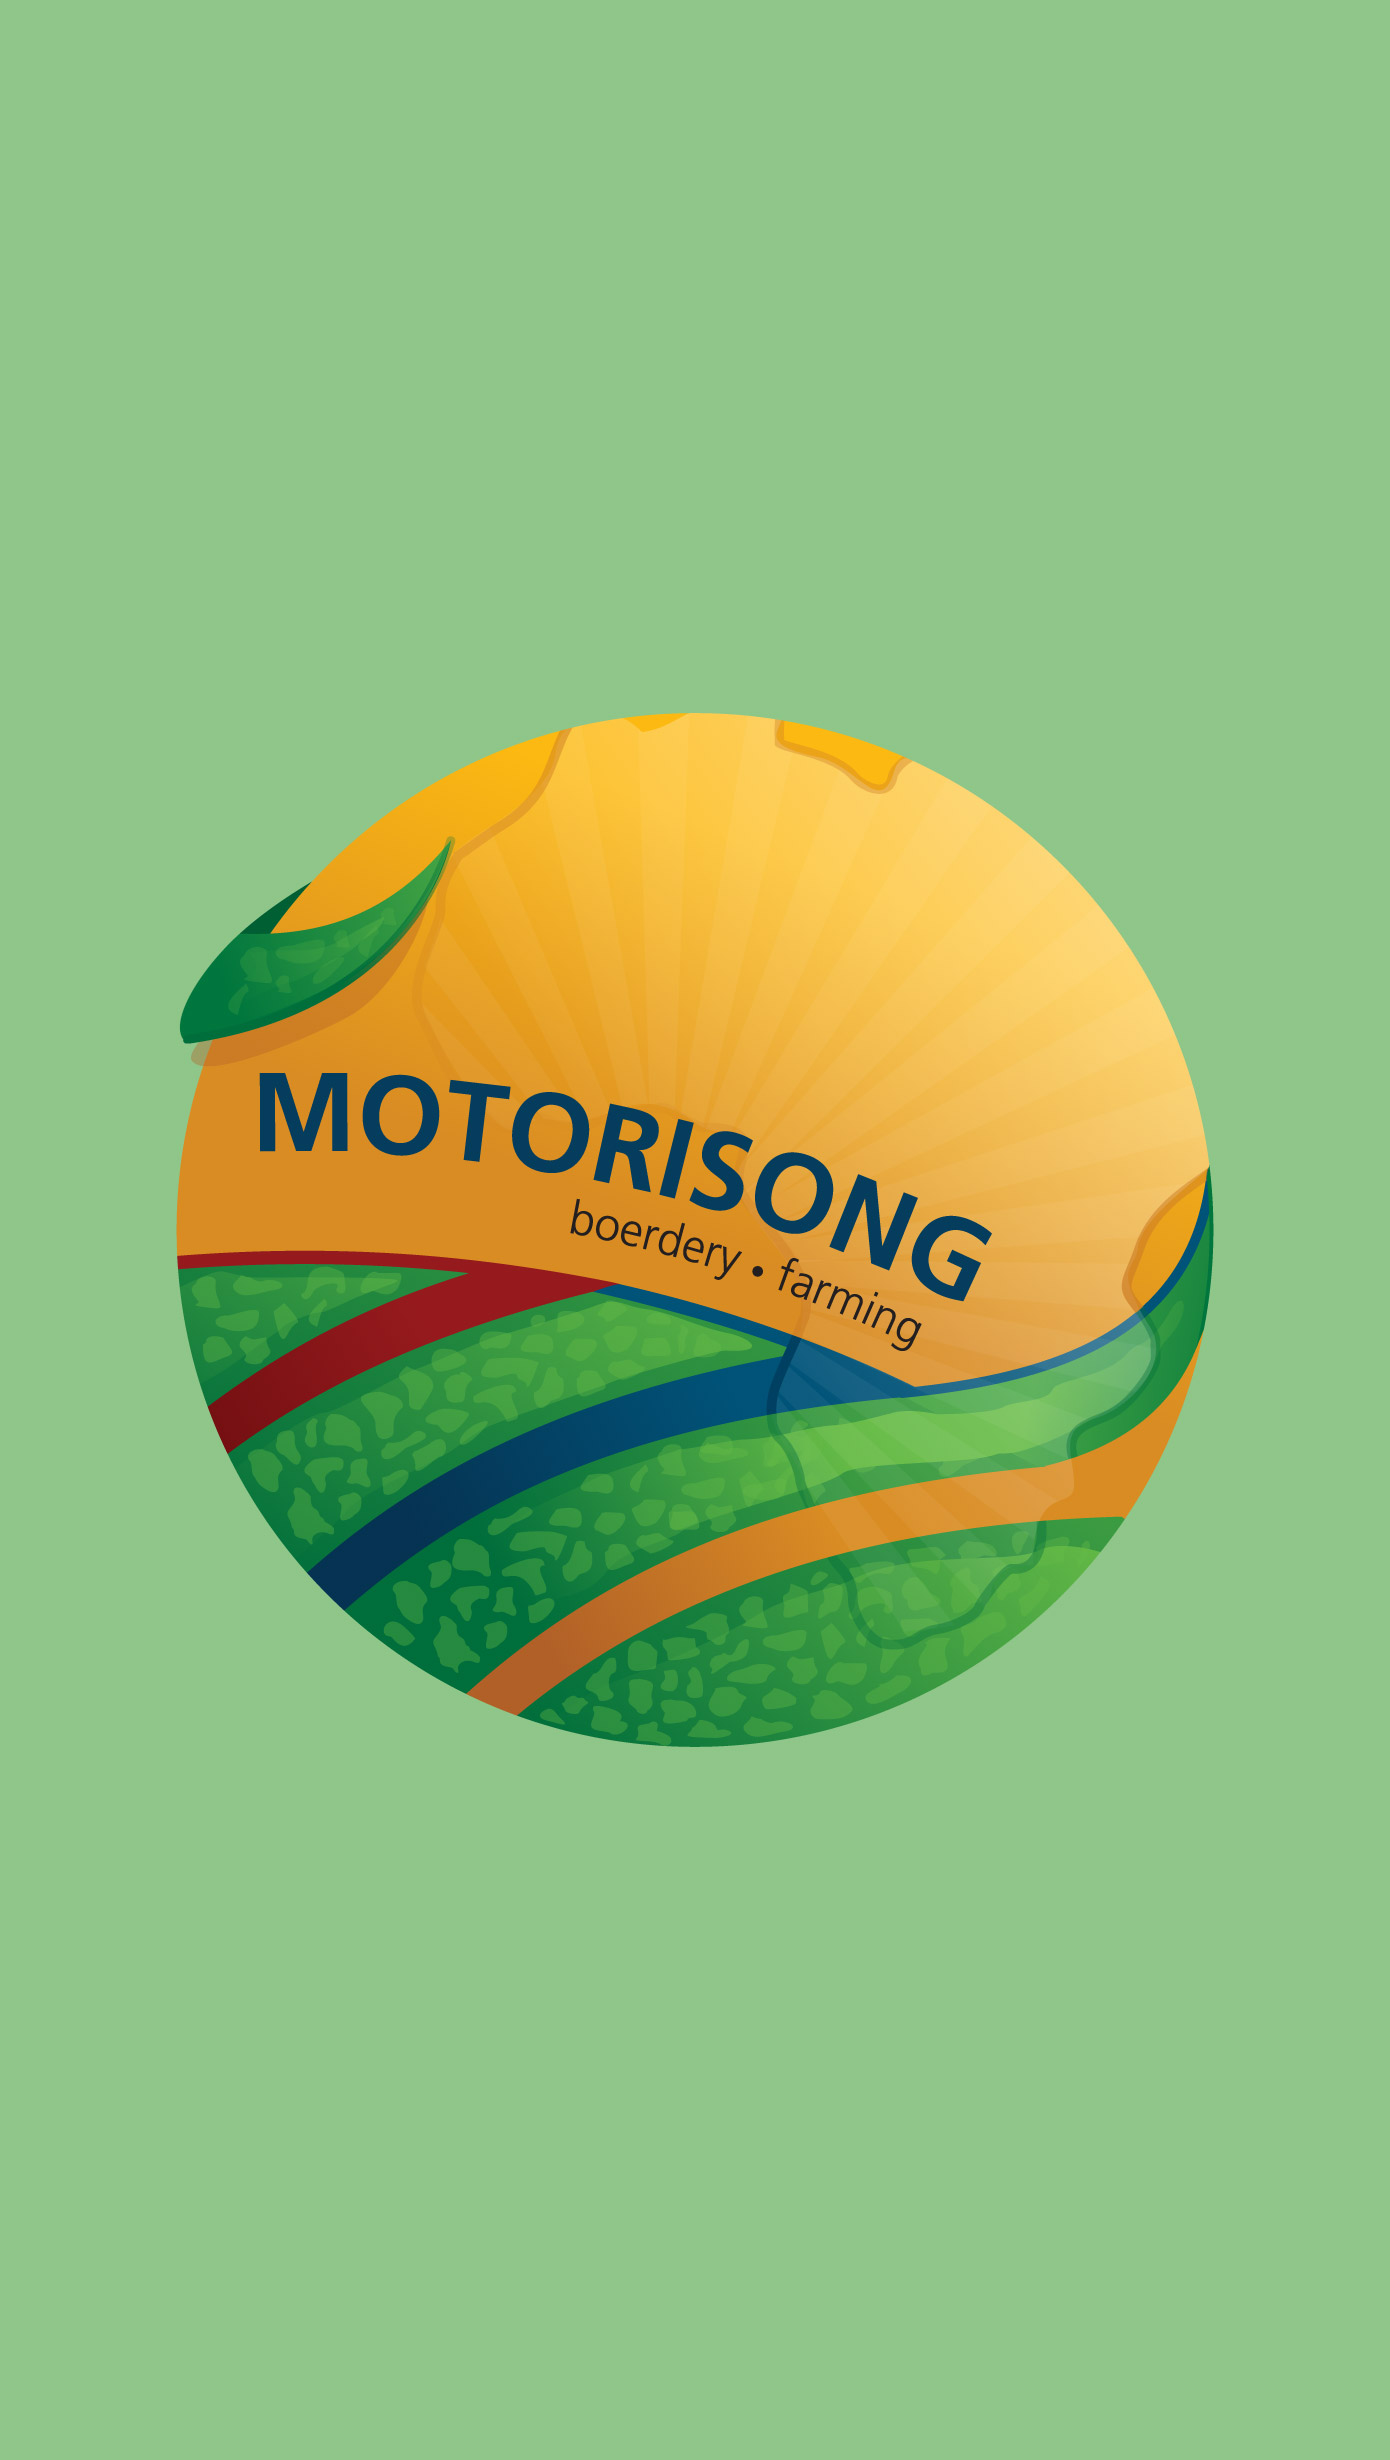 Motorisong Logo Design